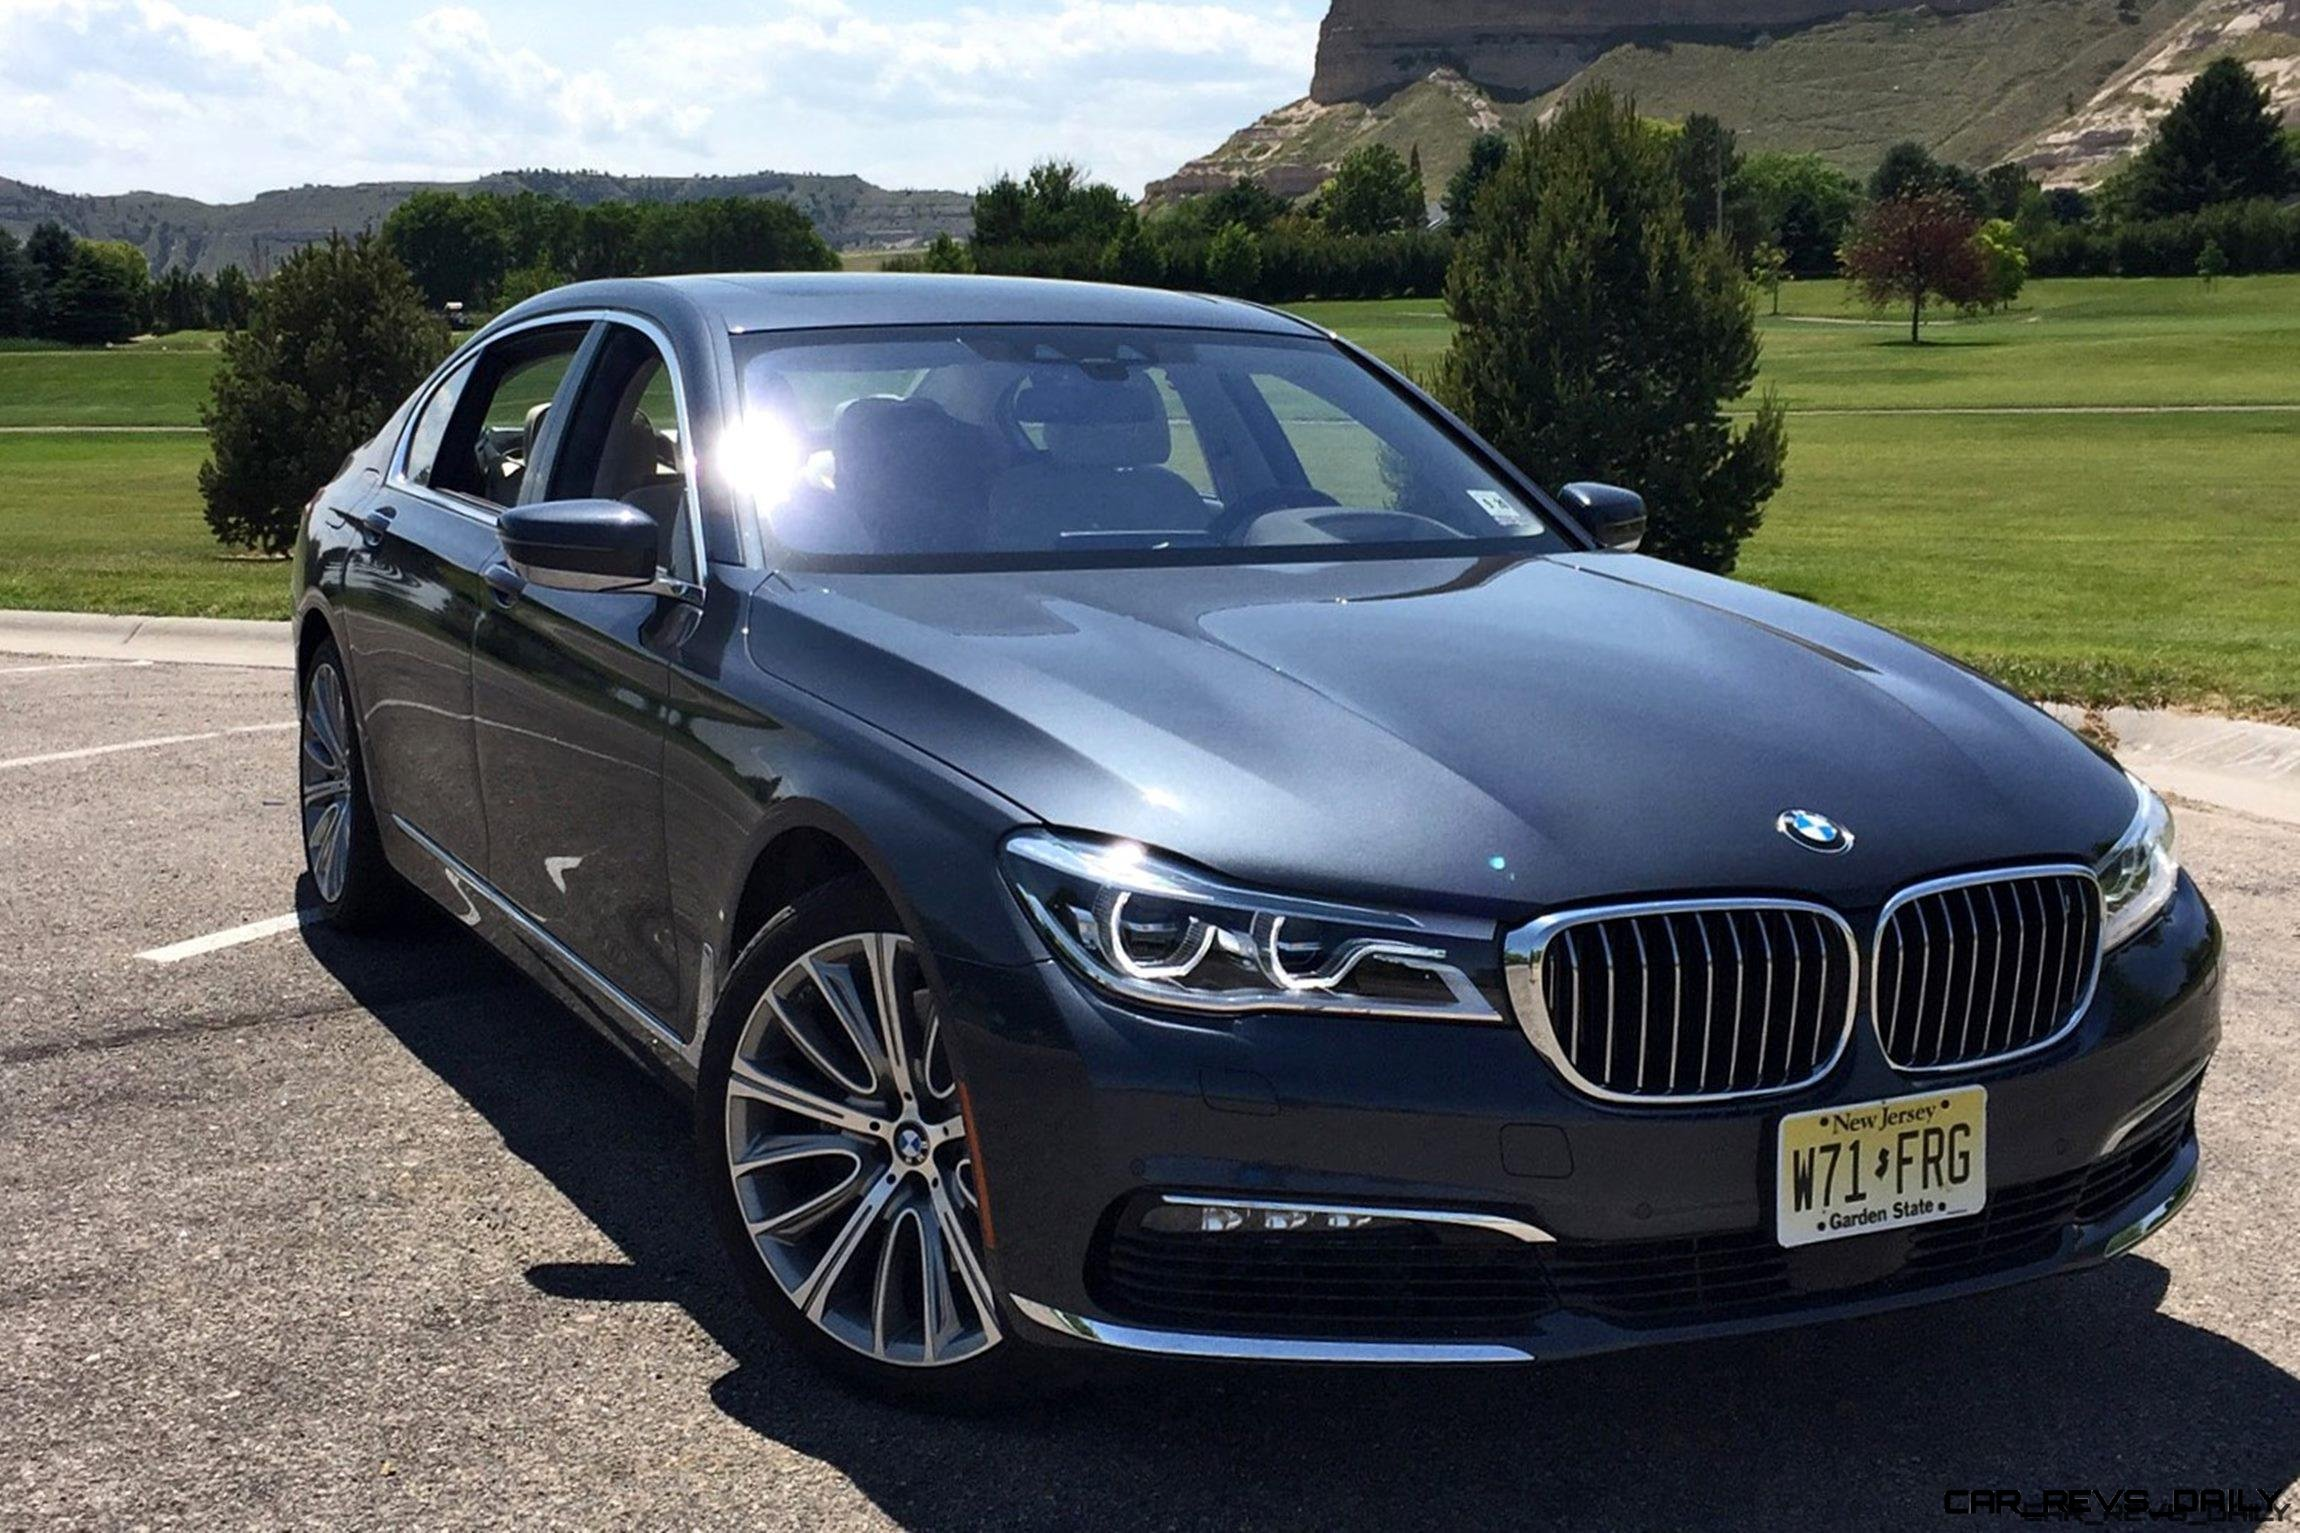 2016 Bmw 750i Road Test Review By Tim Esterdahl 187 Car